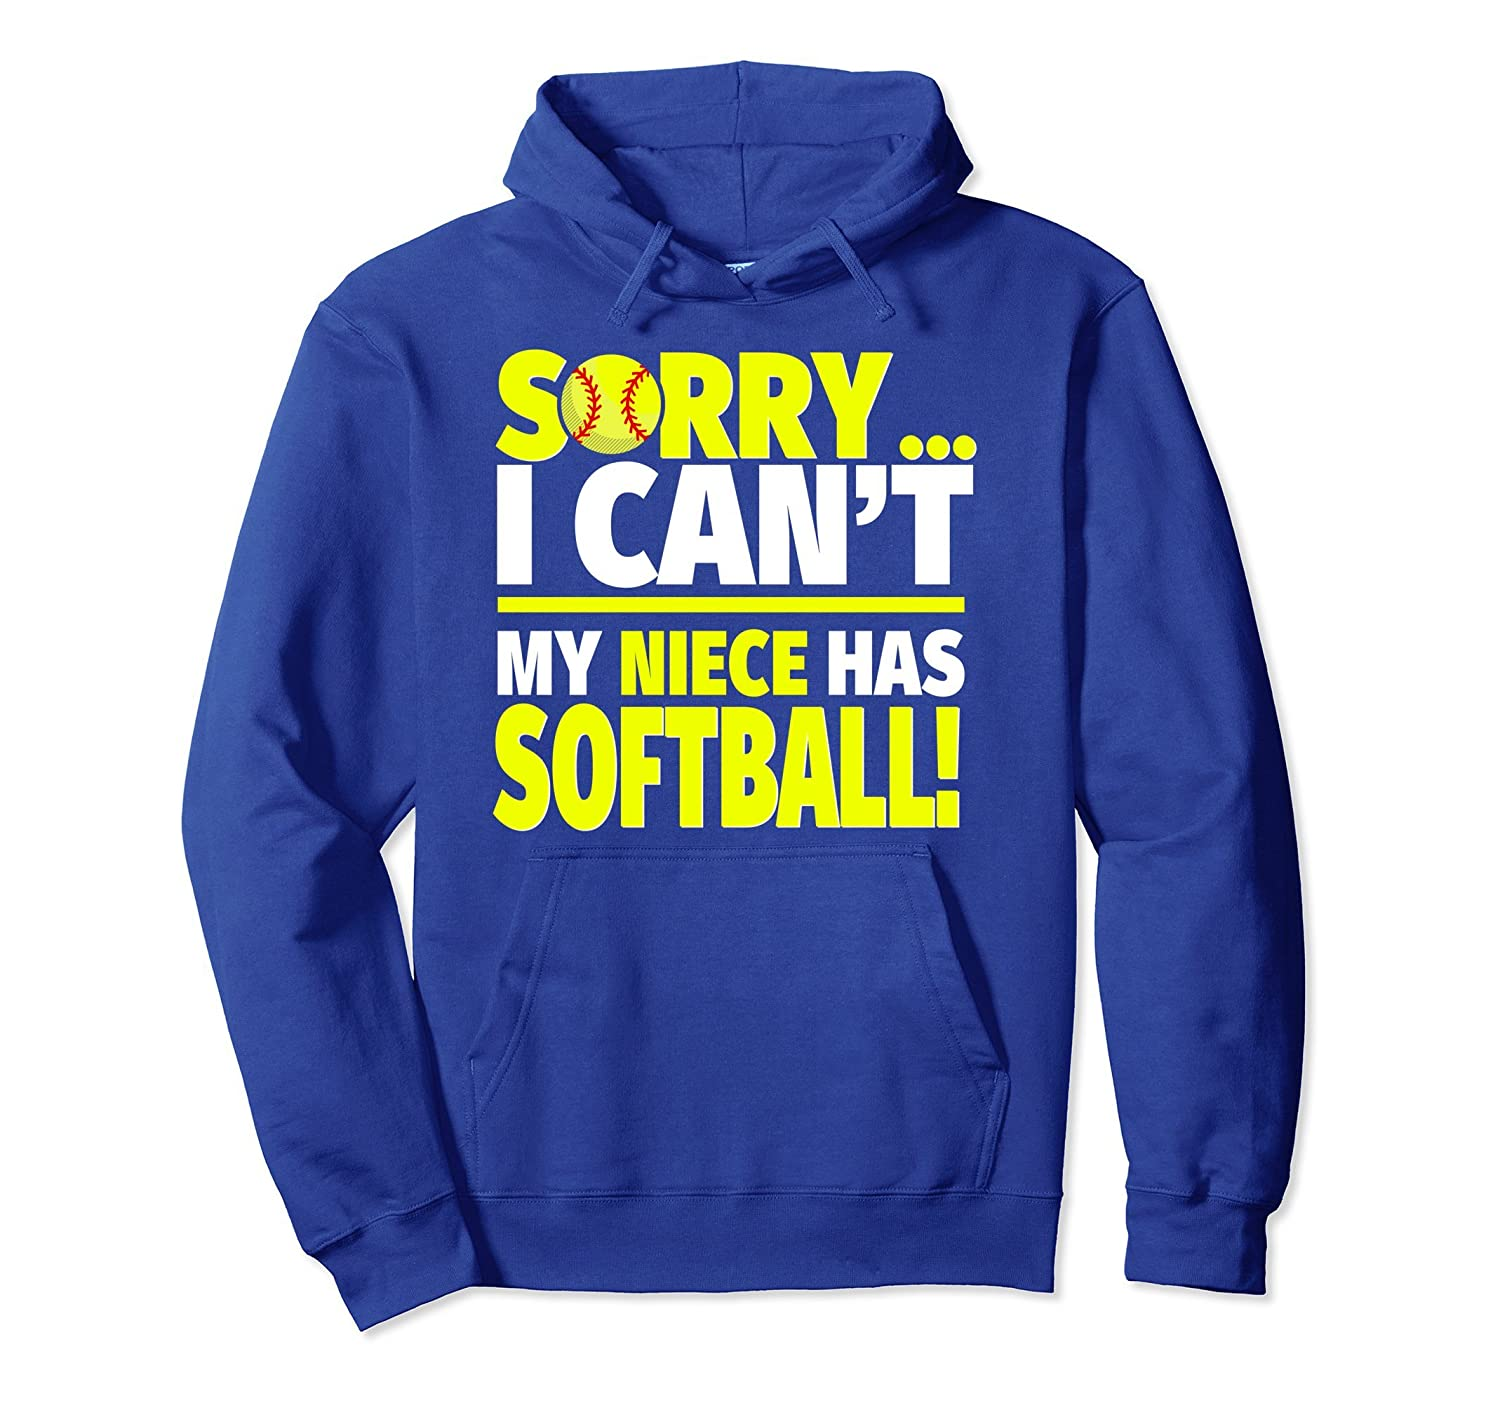 Sorry My Niece Has Softball Hoodie for Aunts and Uncles-alottee gift